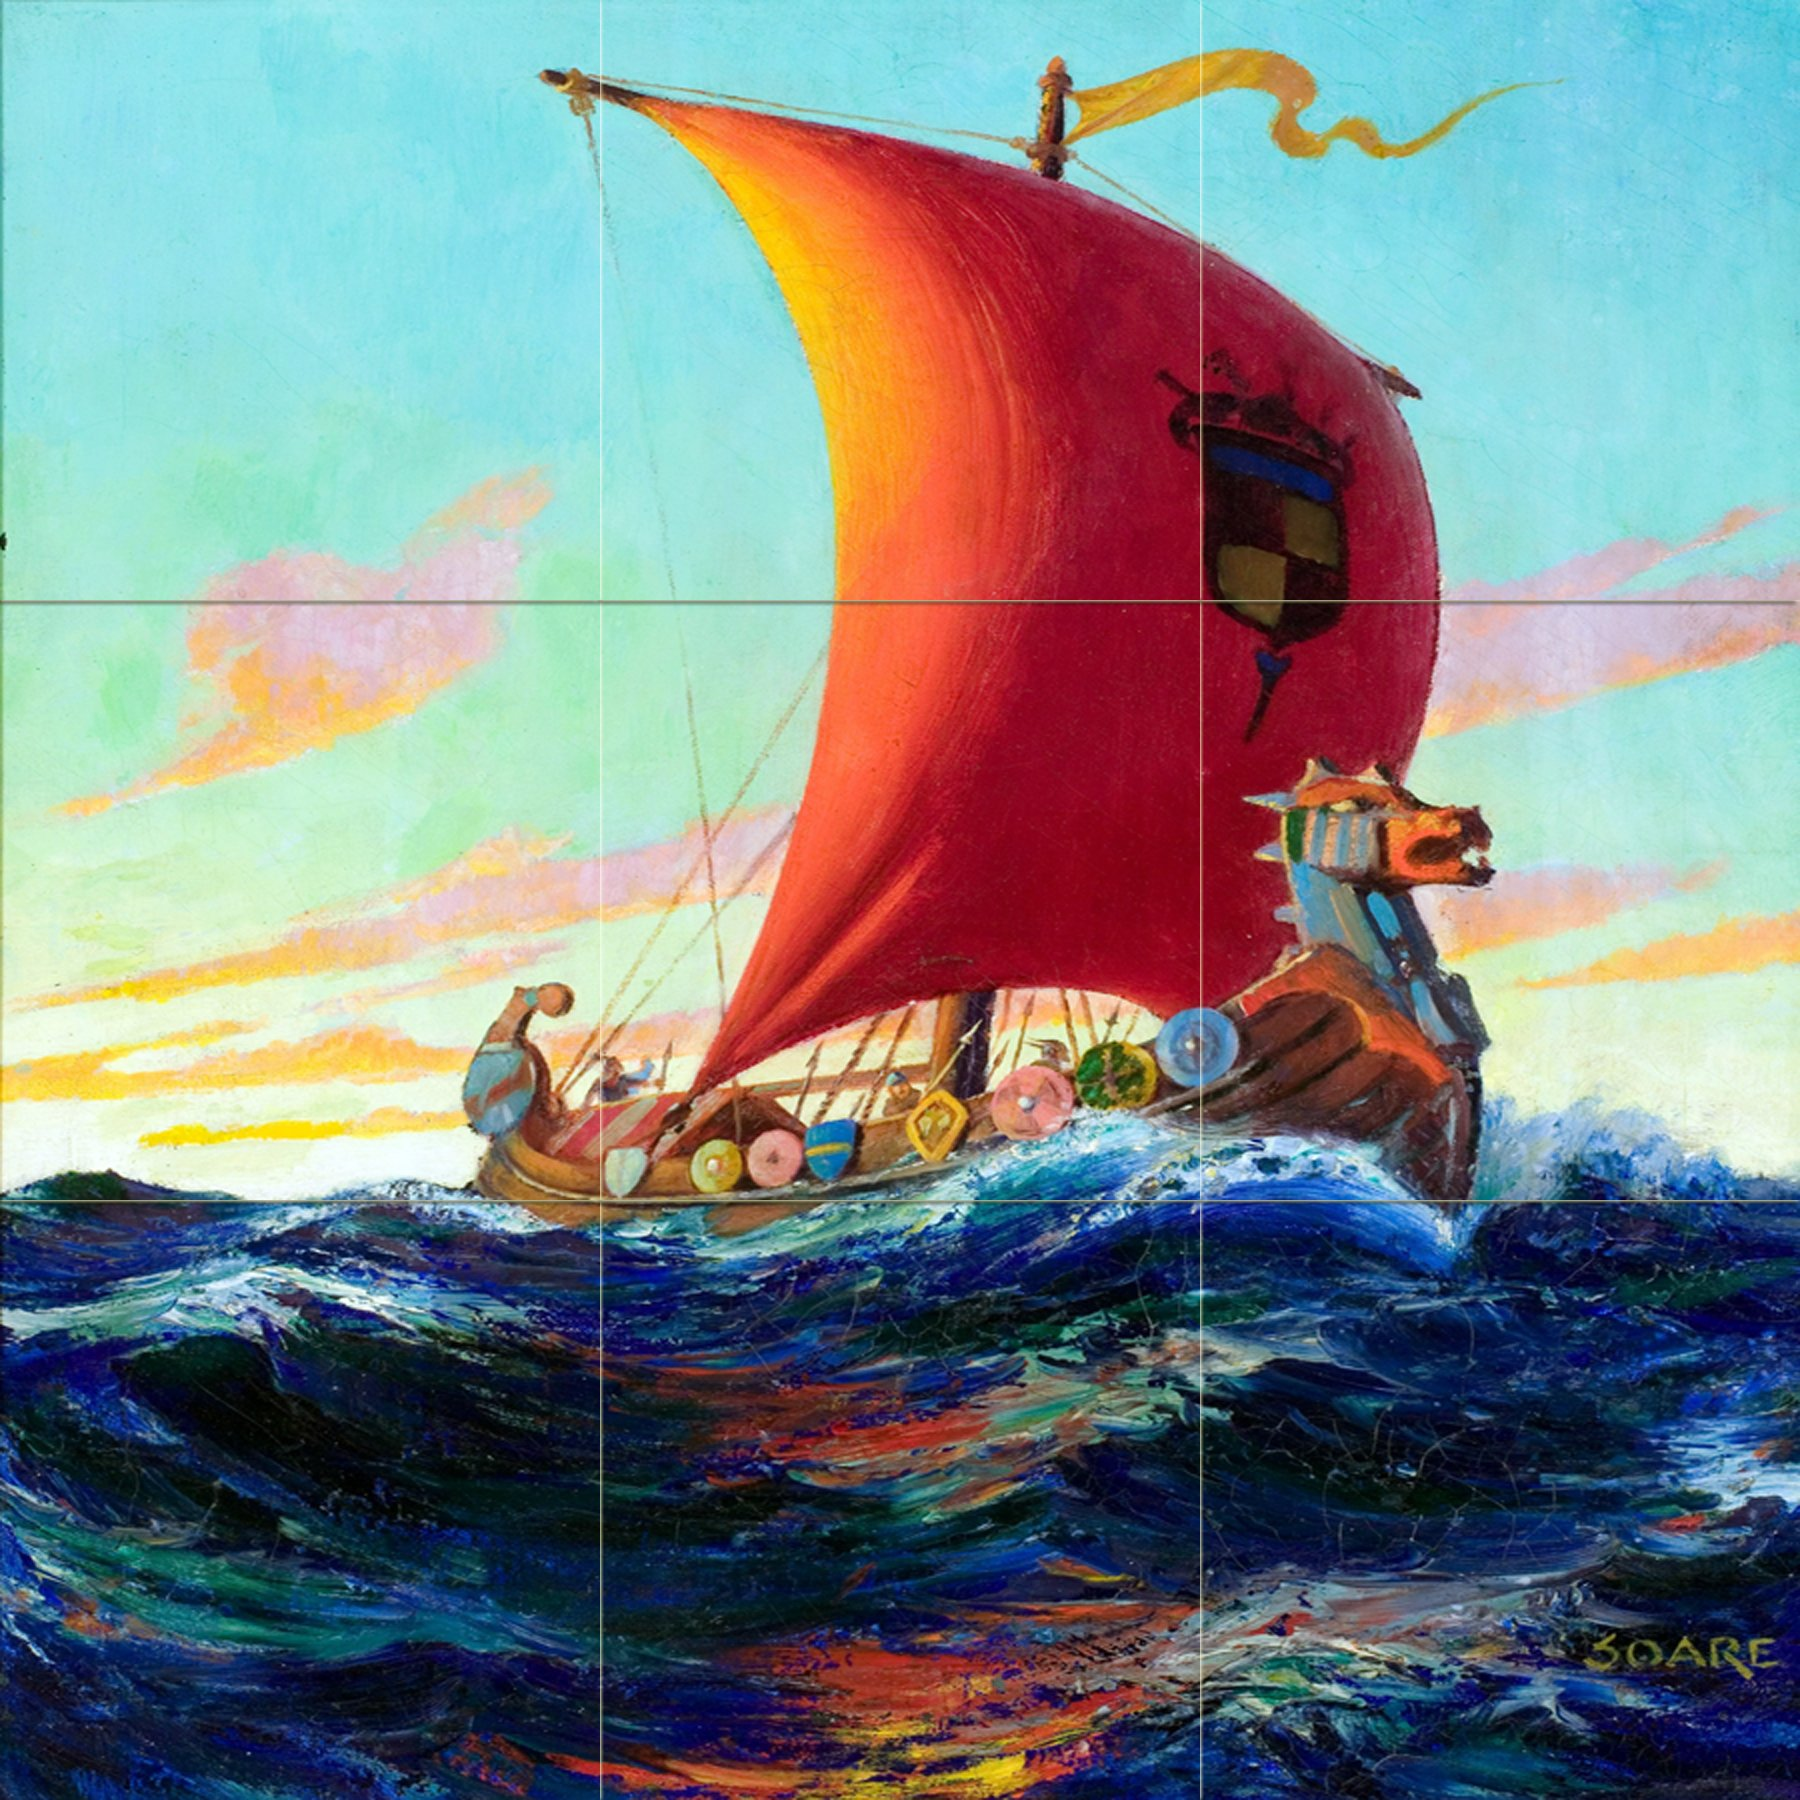 Seascape pirate ship captain's boat sea waves by William Fulton Soare Tile Mural Kitchen Bathroom Wall Backsplash Behind Stove Range Sink Splashback 3x3 6'' Marble, Matte by FlekmanArt